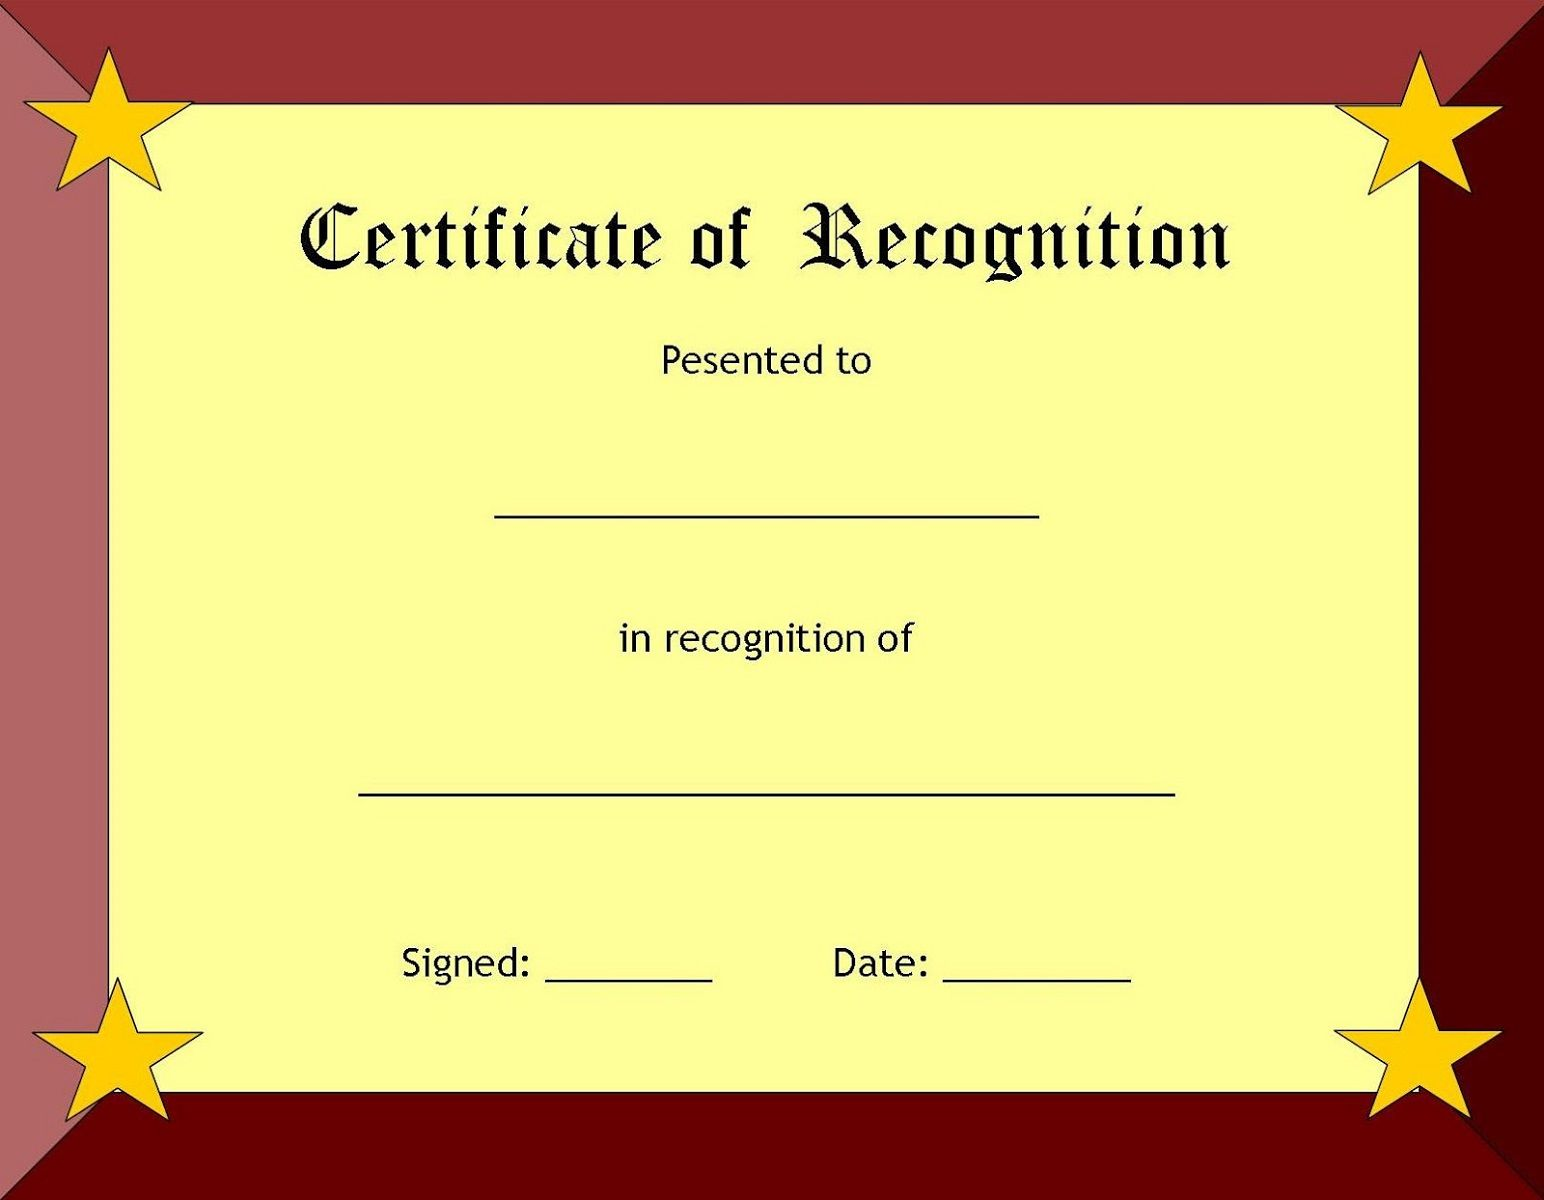 Blank Certificate Template for Best Solution | Chart or Table ...